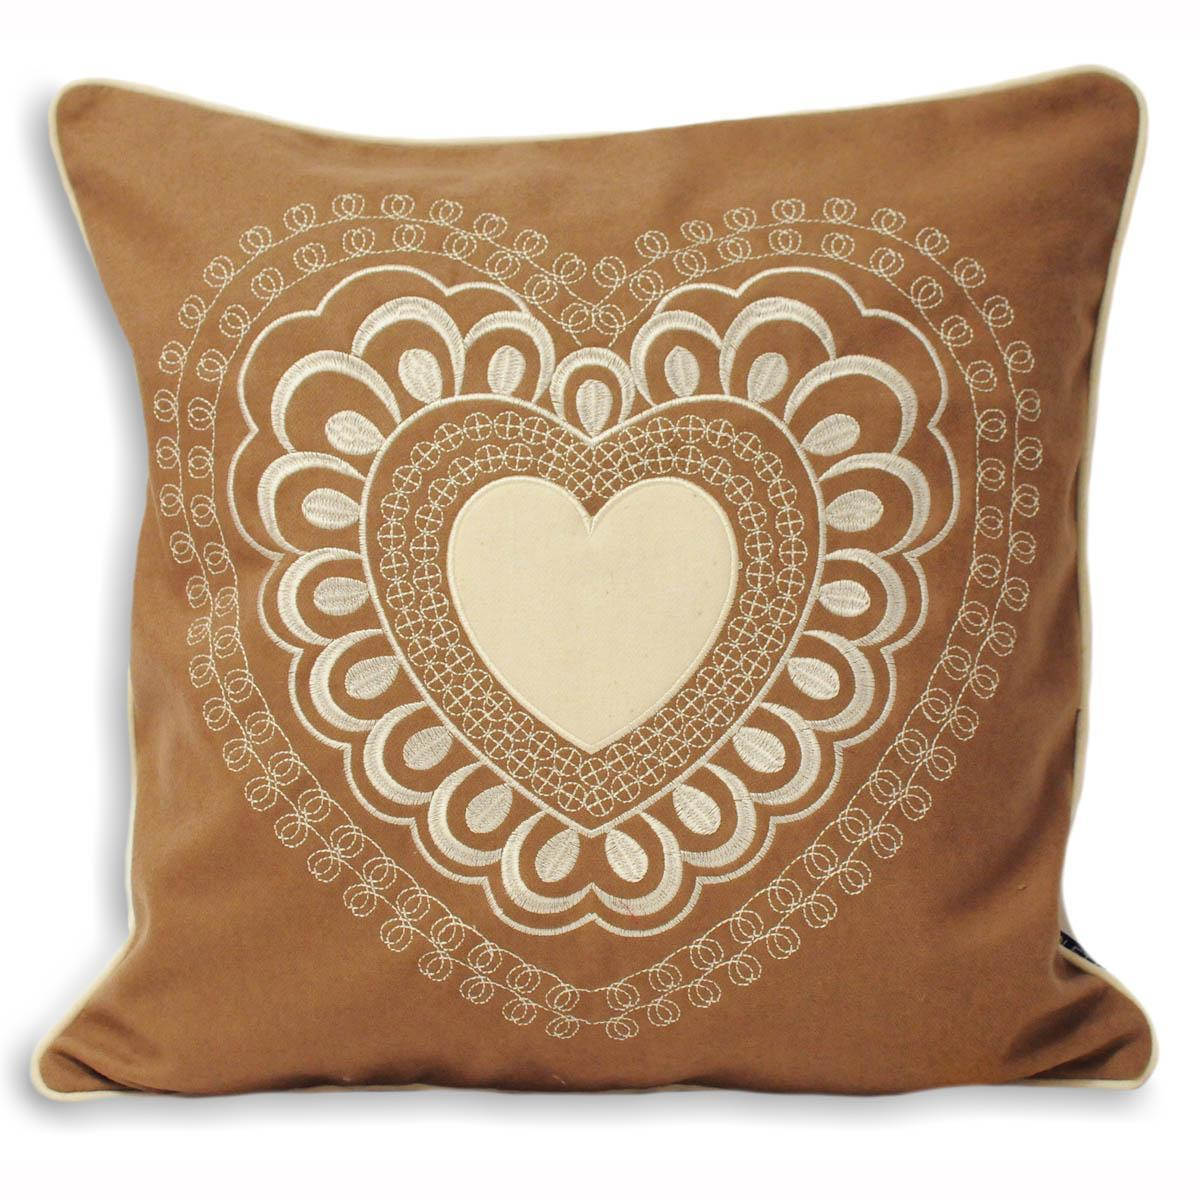 Riva Cushions And Throws Valantine Square Filled Cushion Caramel Picture